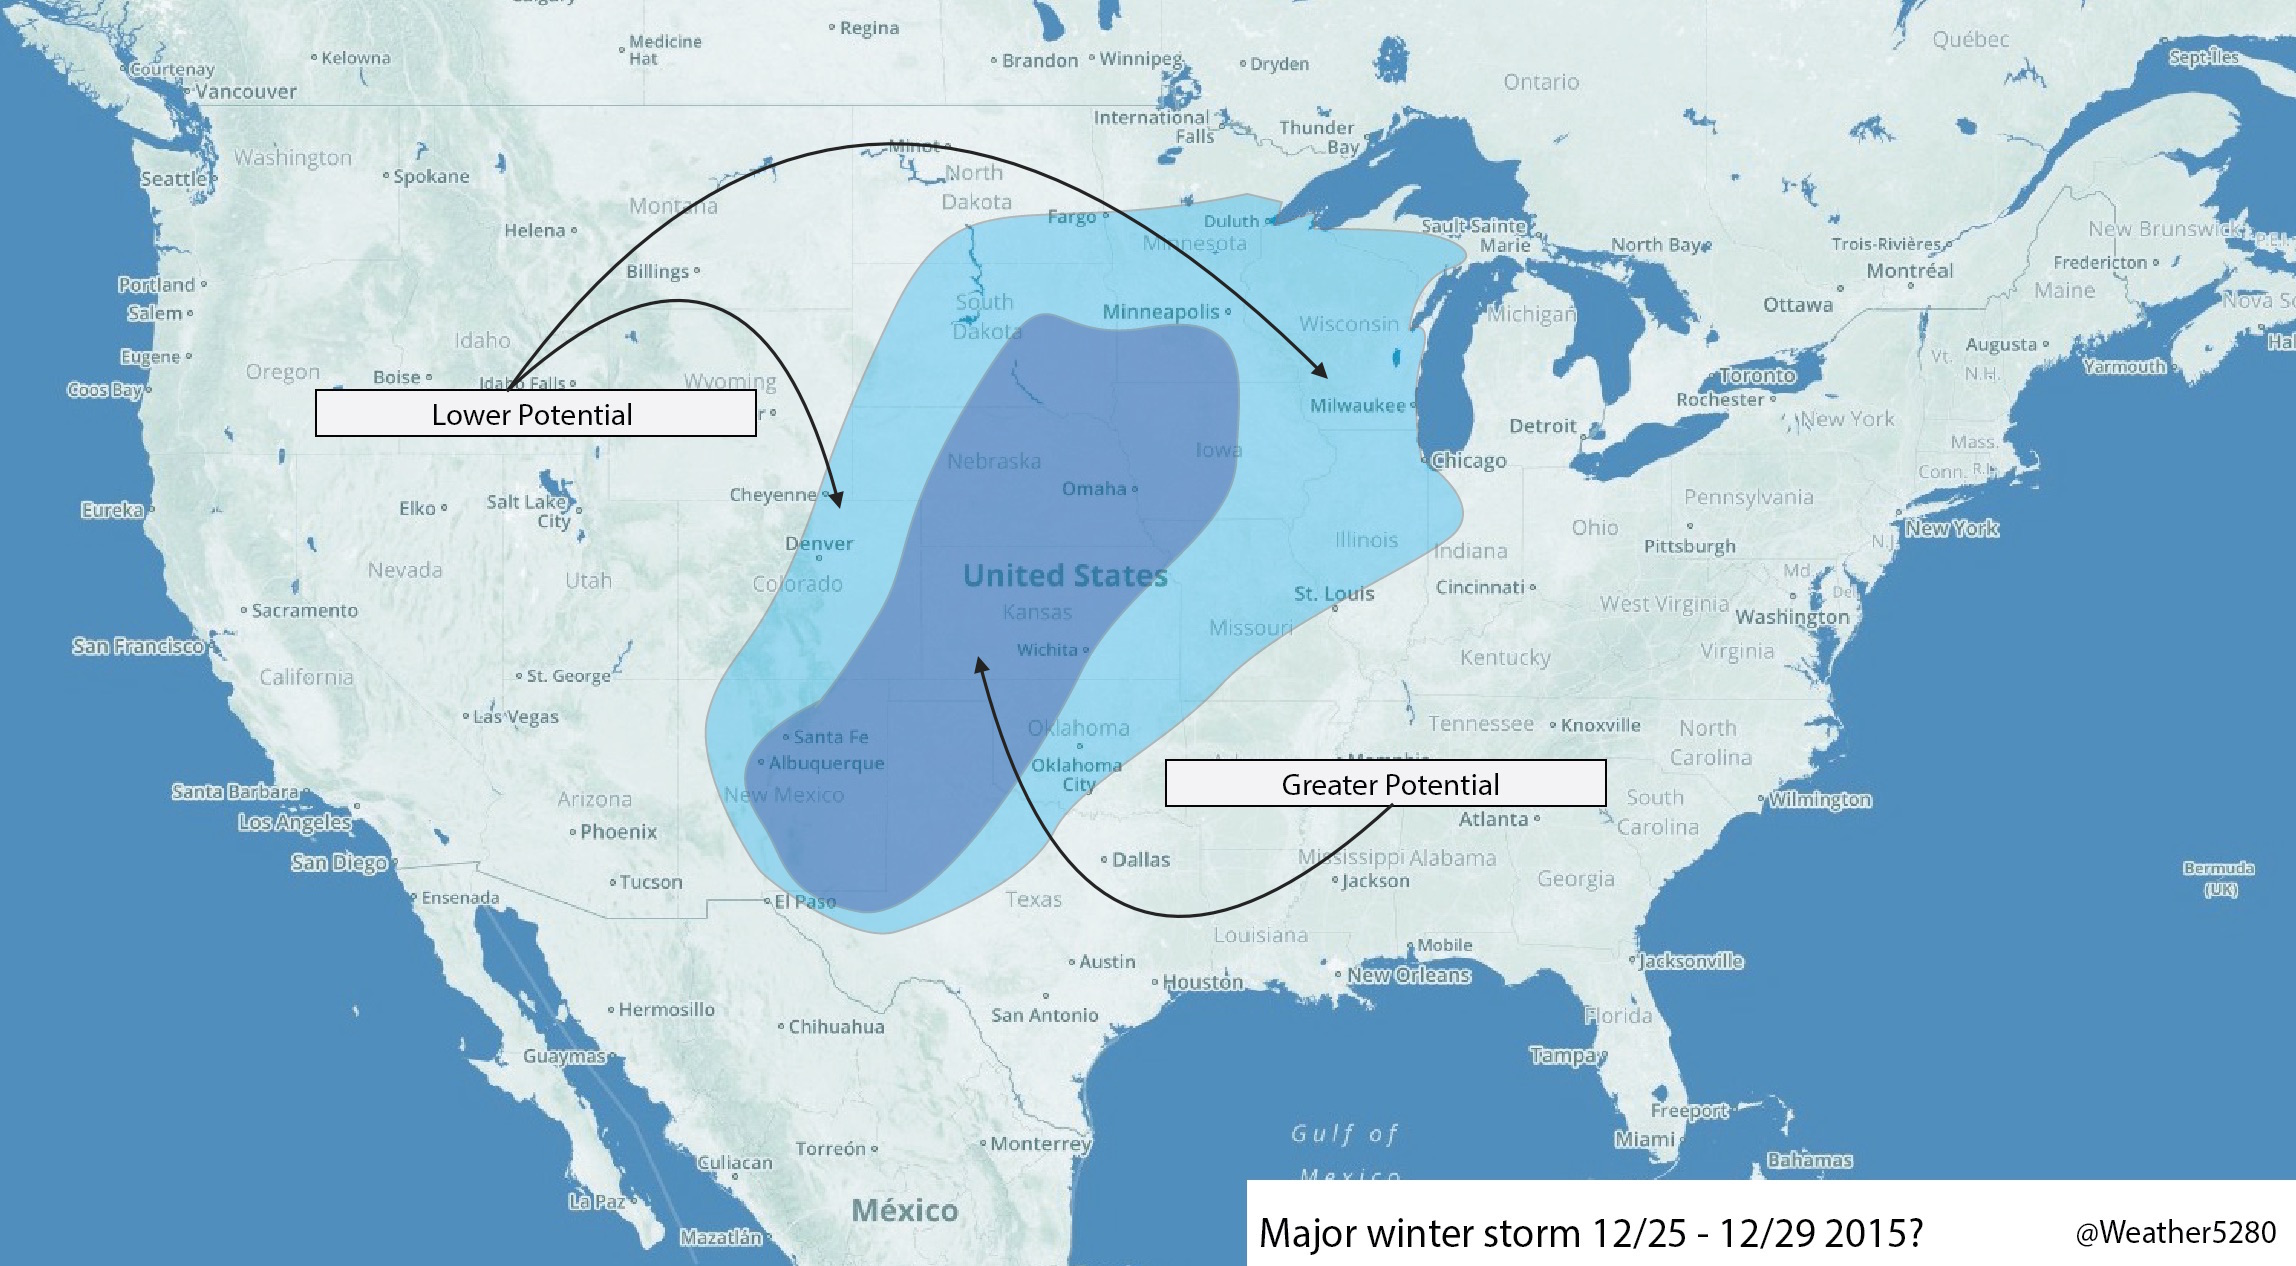 Winter winter storm potential?